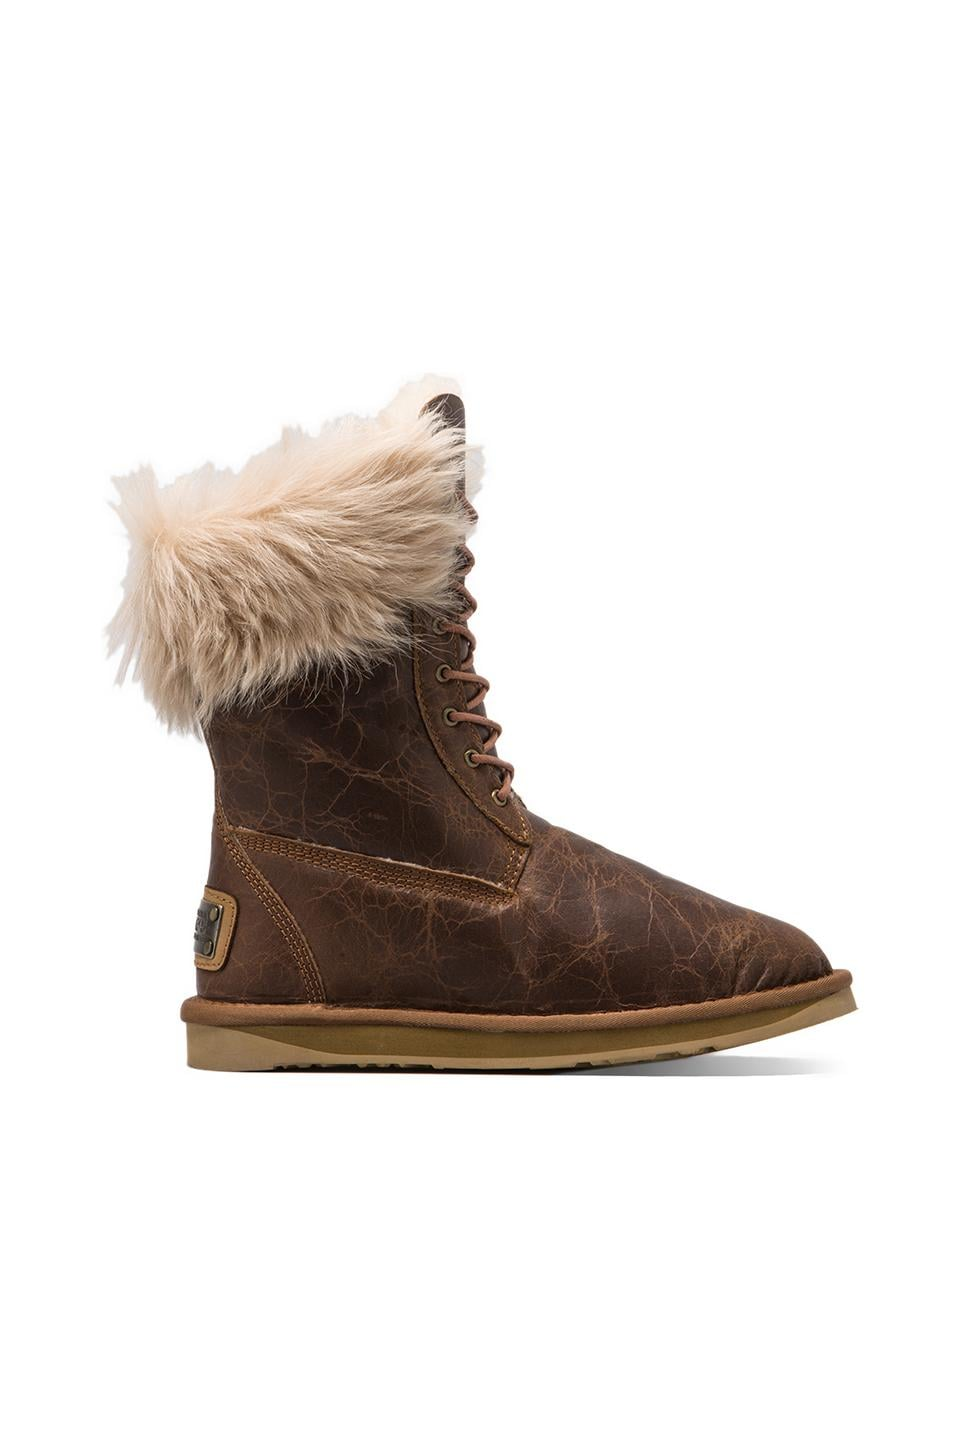 Australia Luxe Collective Montana Boot with Raccoon Fur Trim in Chestnut